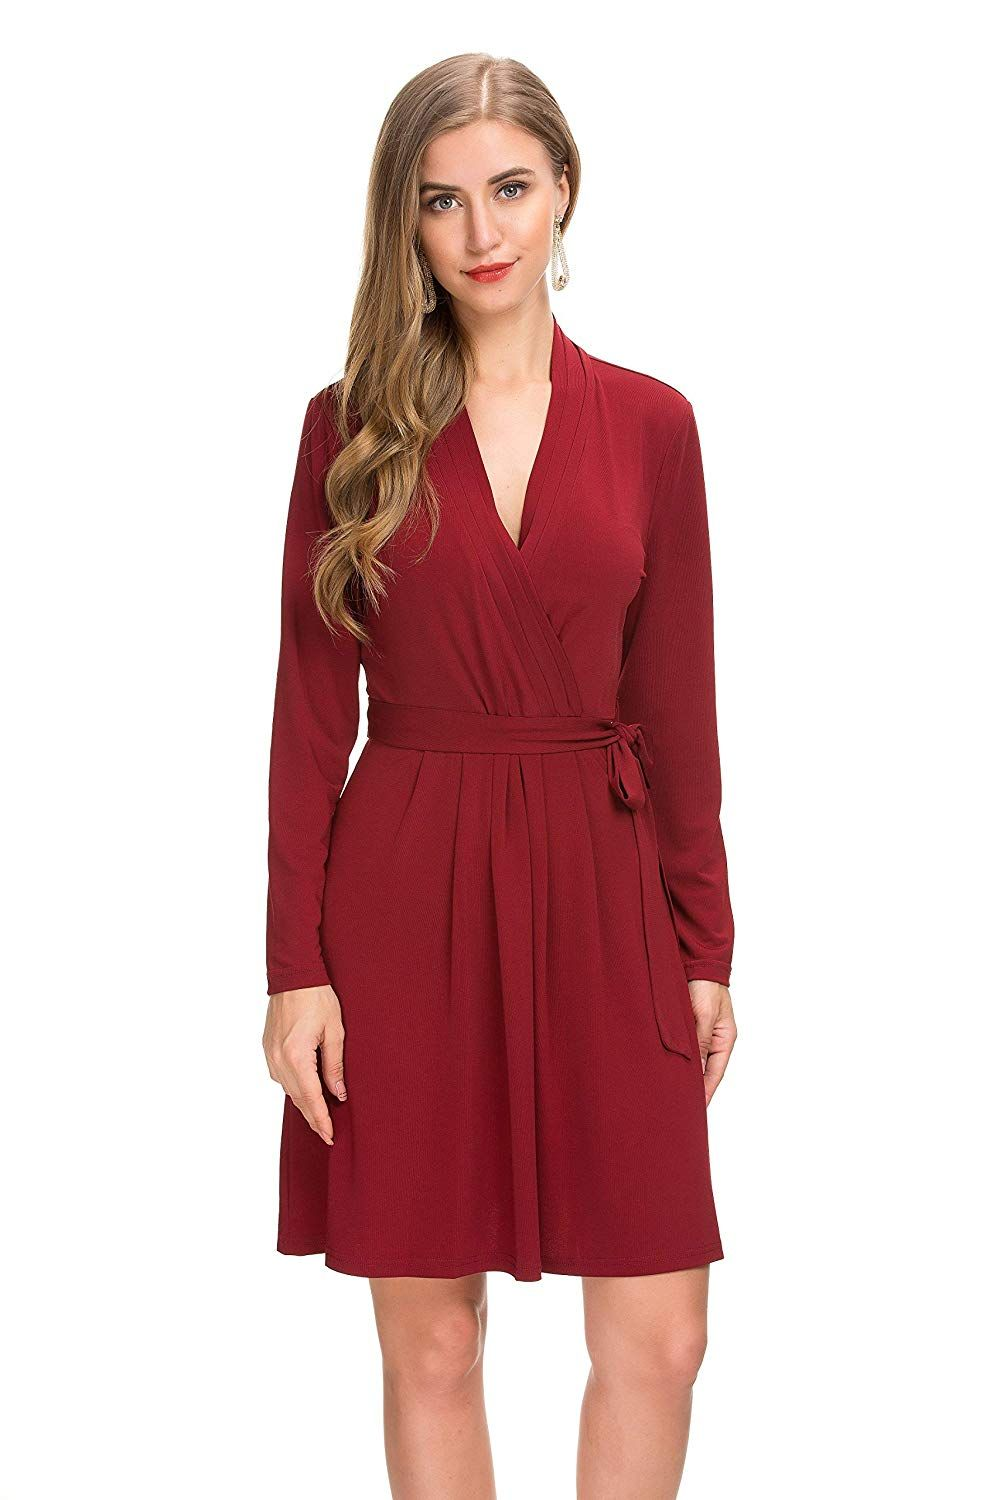 2f28ae5e14cc Le Vonfort Women s Long Sleeve Crossover V Neck Casual Swing A Line Belted  Faux Wrap Dress at Amazon Women s Clothing store